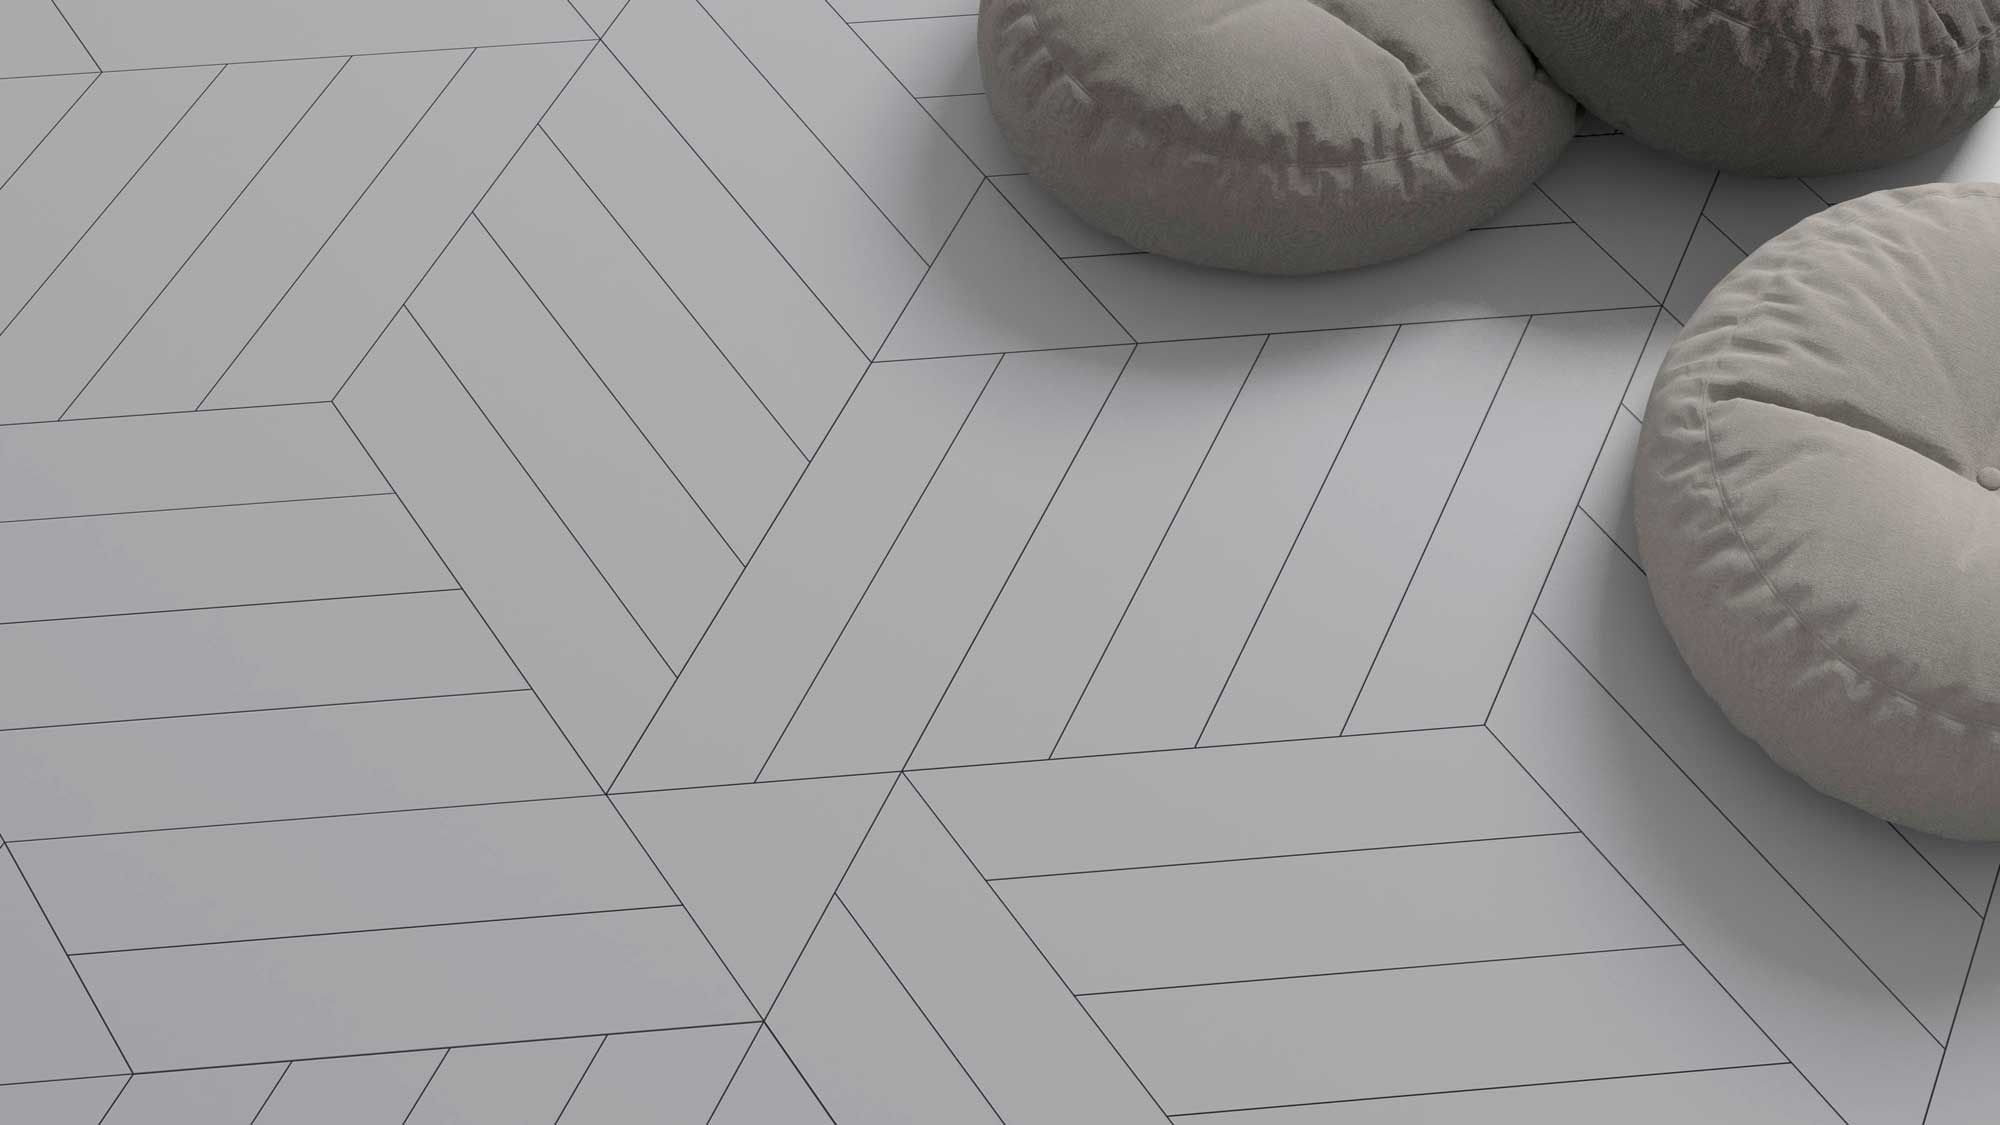 TRIANGLE FLOOR - FLOOR TILES by WOW | Finishes | Pinterest ...